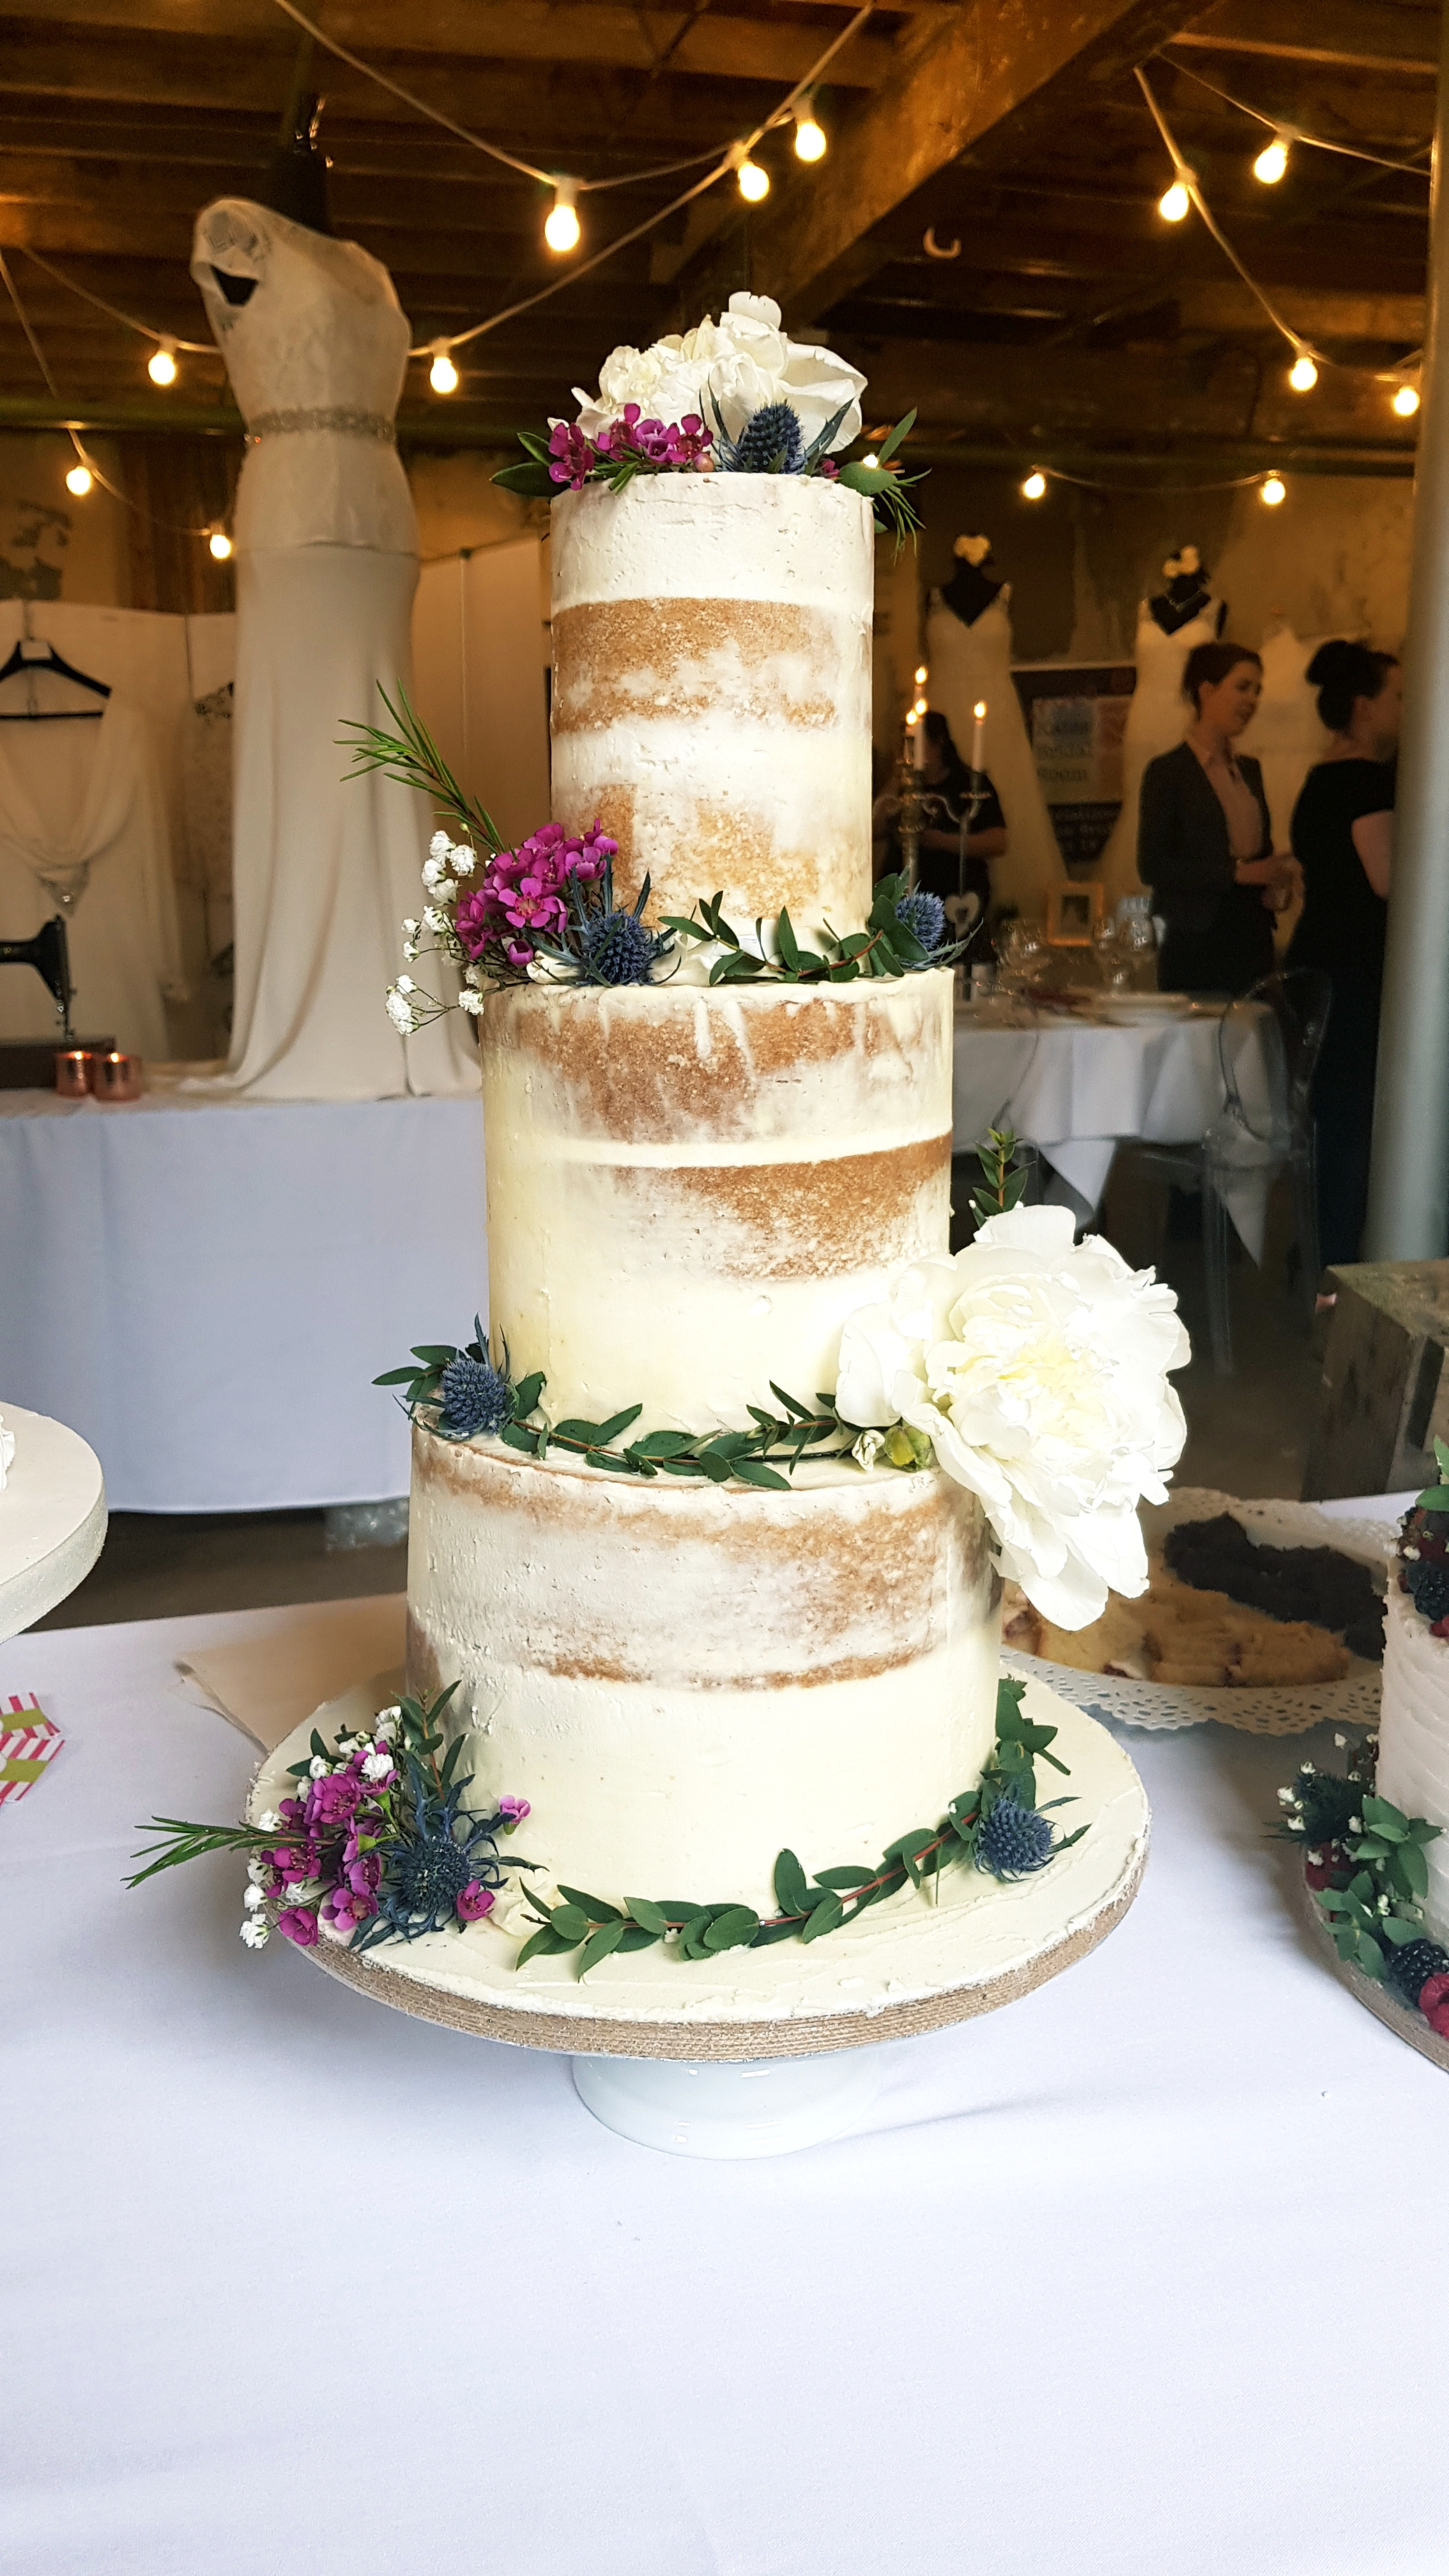 3 tier semi naked wedding cake with fresh peonies